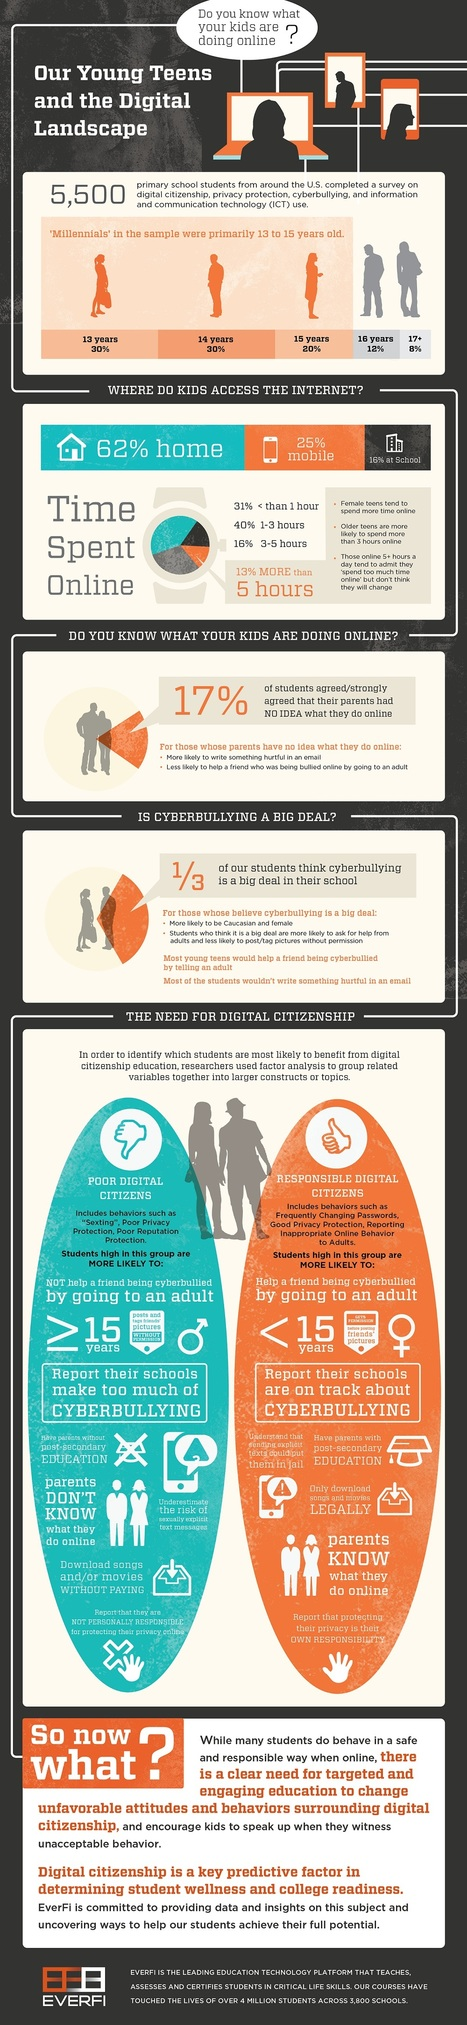 Why Kids Must Be Taught Digital Manners Infographic | Digital Citizenship is Elementary | Scoop.it